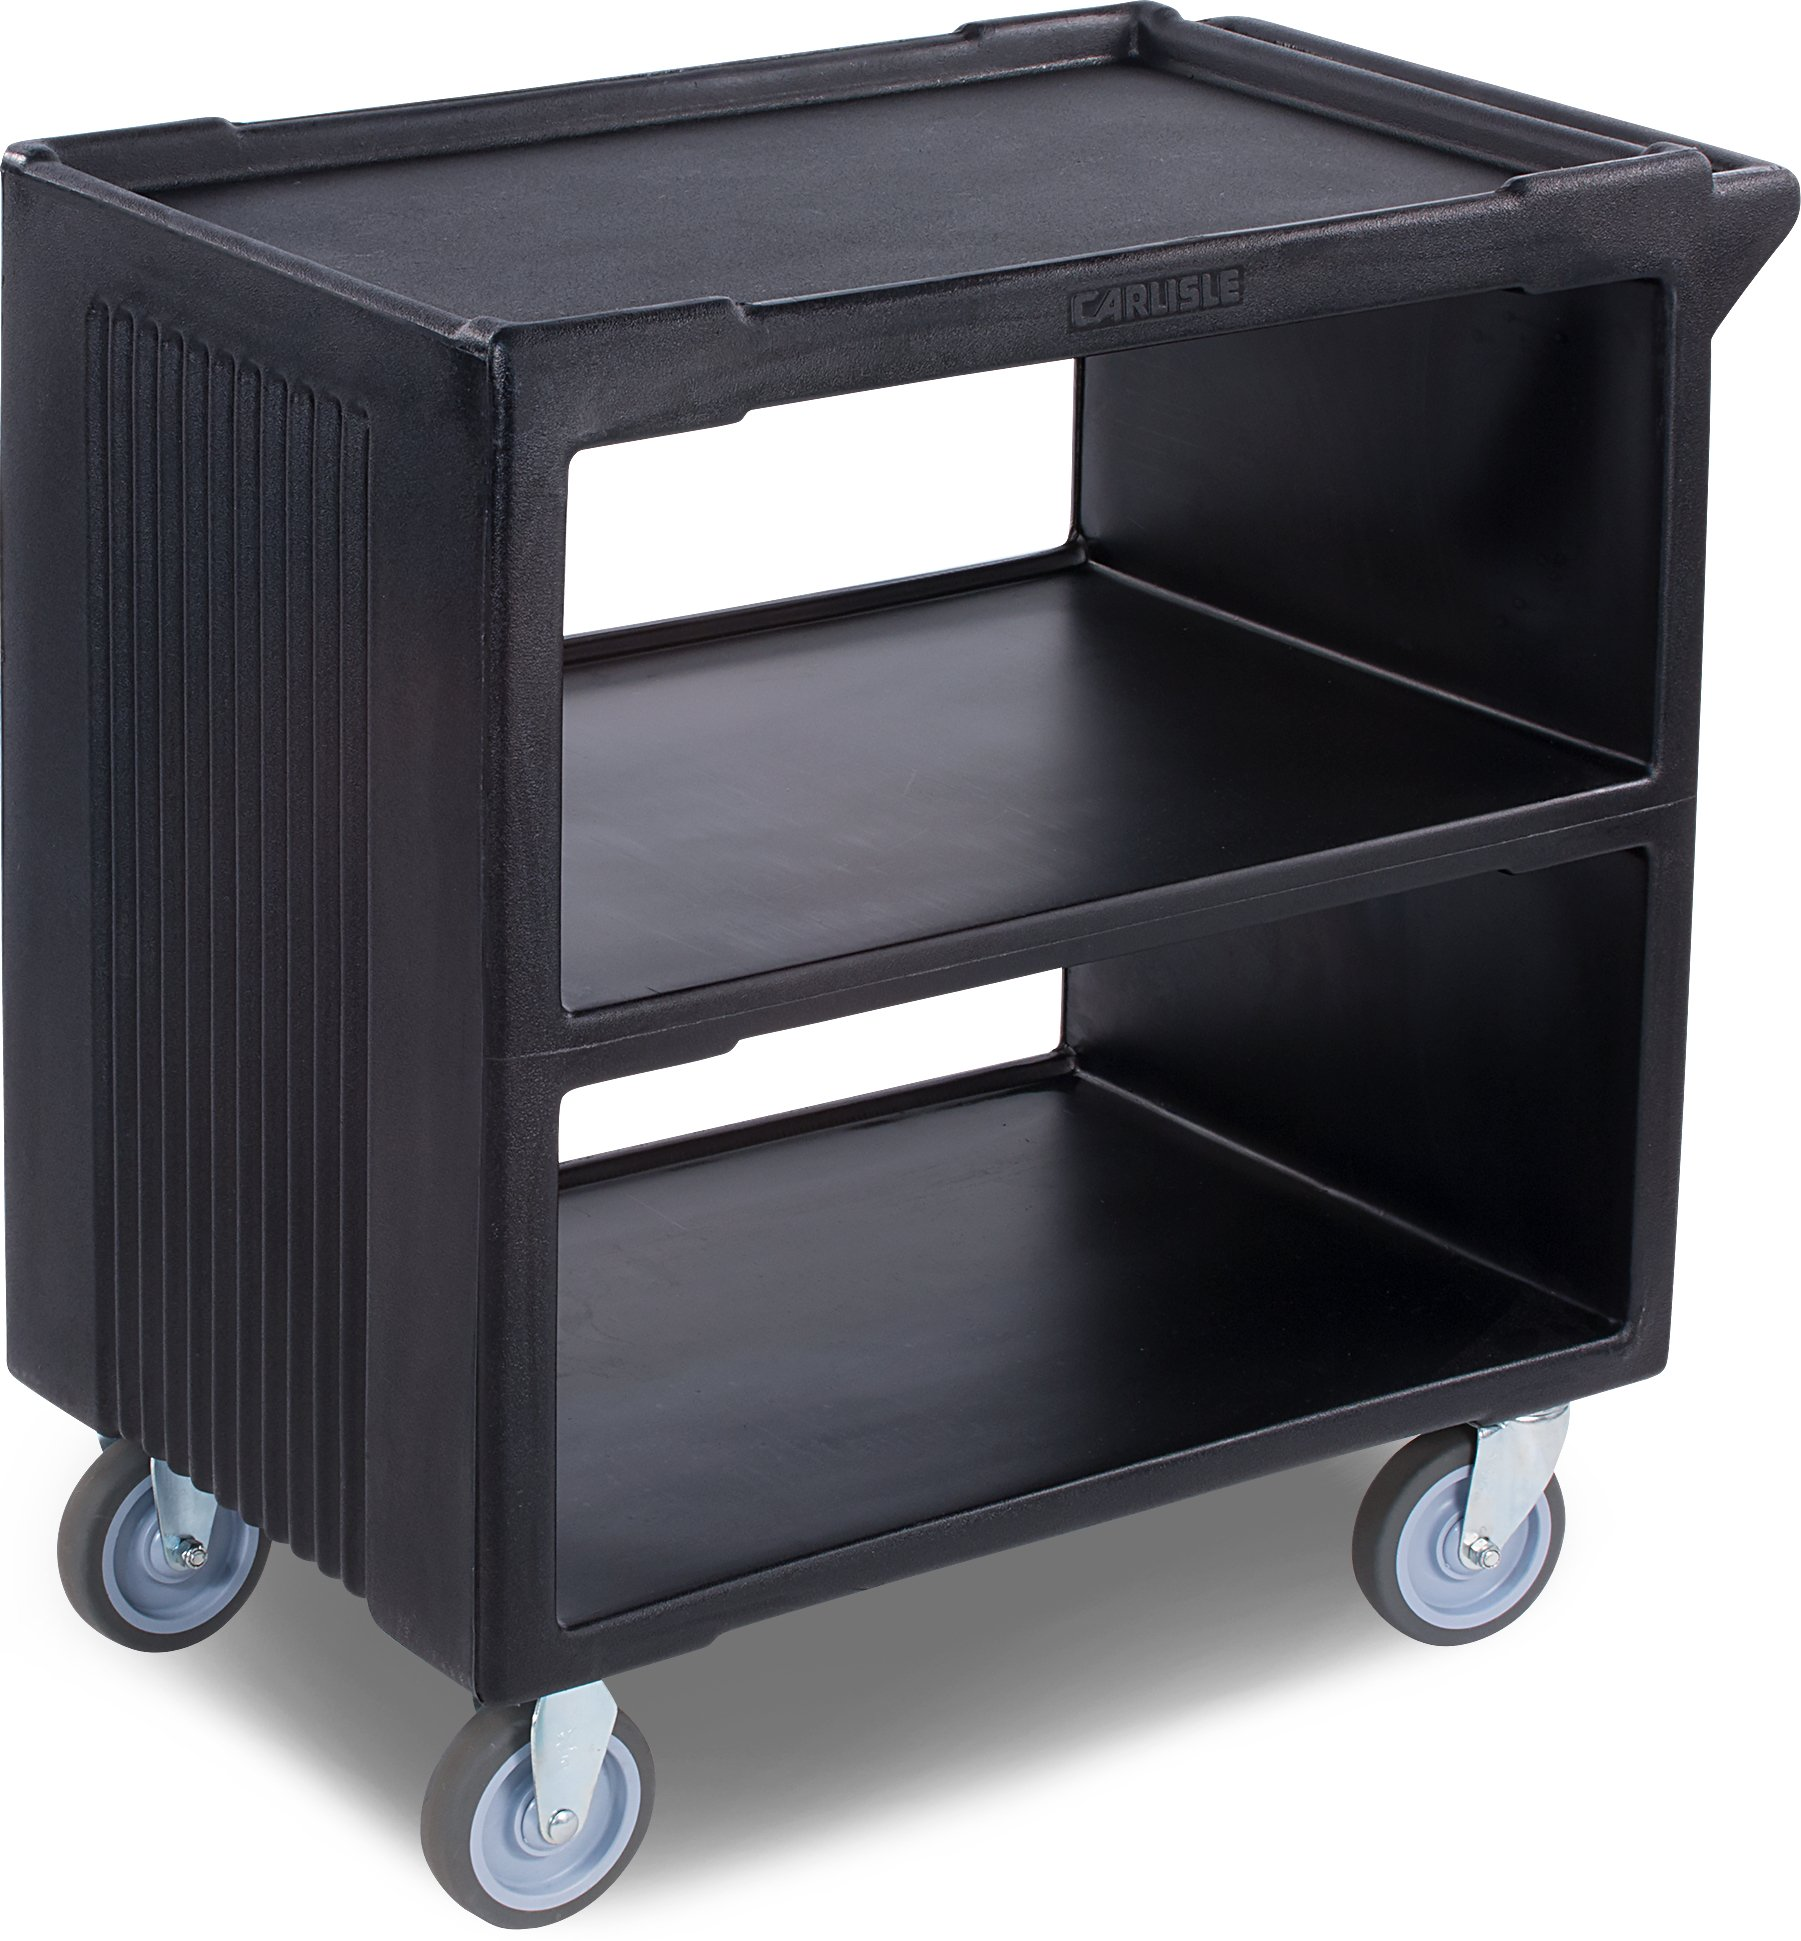 Carlisle SBC23003 Polyethylene Service Cart with 2 Fixed Casters and 2 Swivel Casters, 33.63'' L x 20.25'' W x 34.25'' H, Black